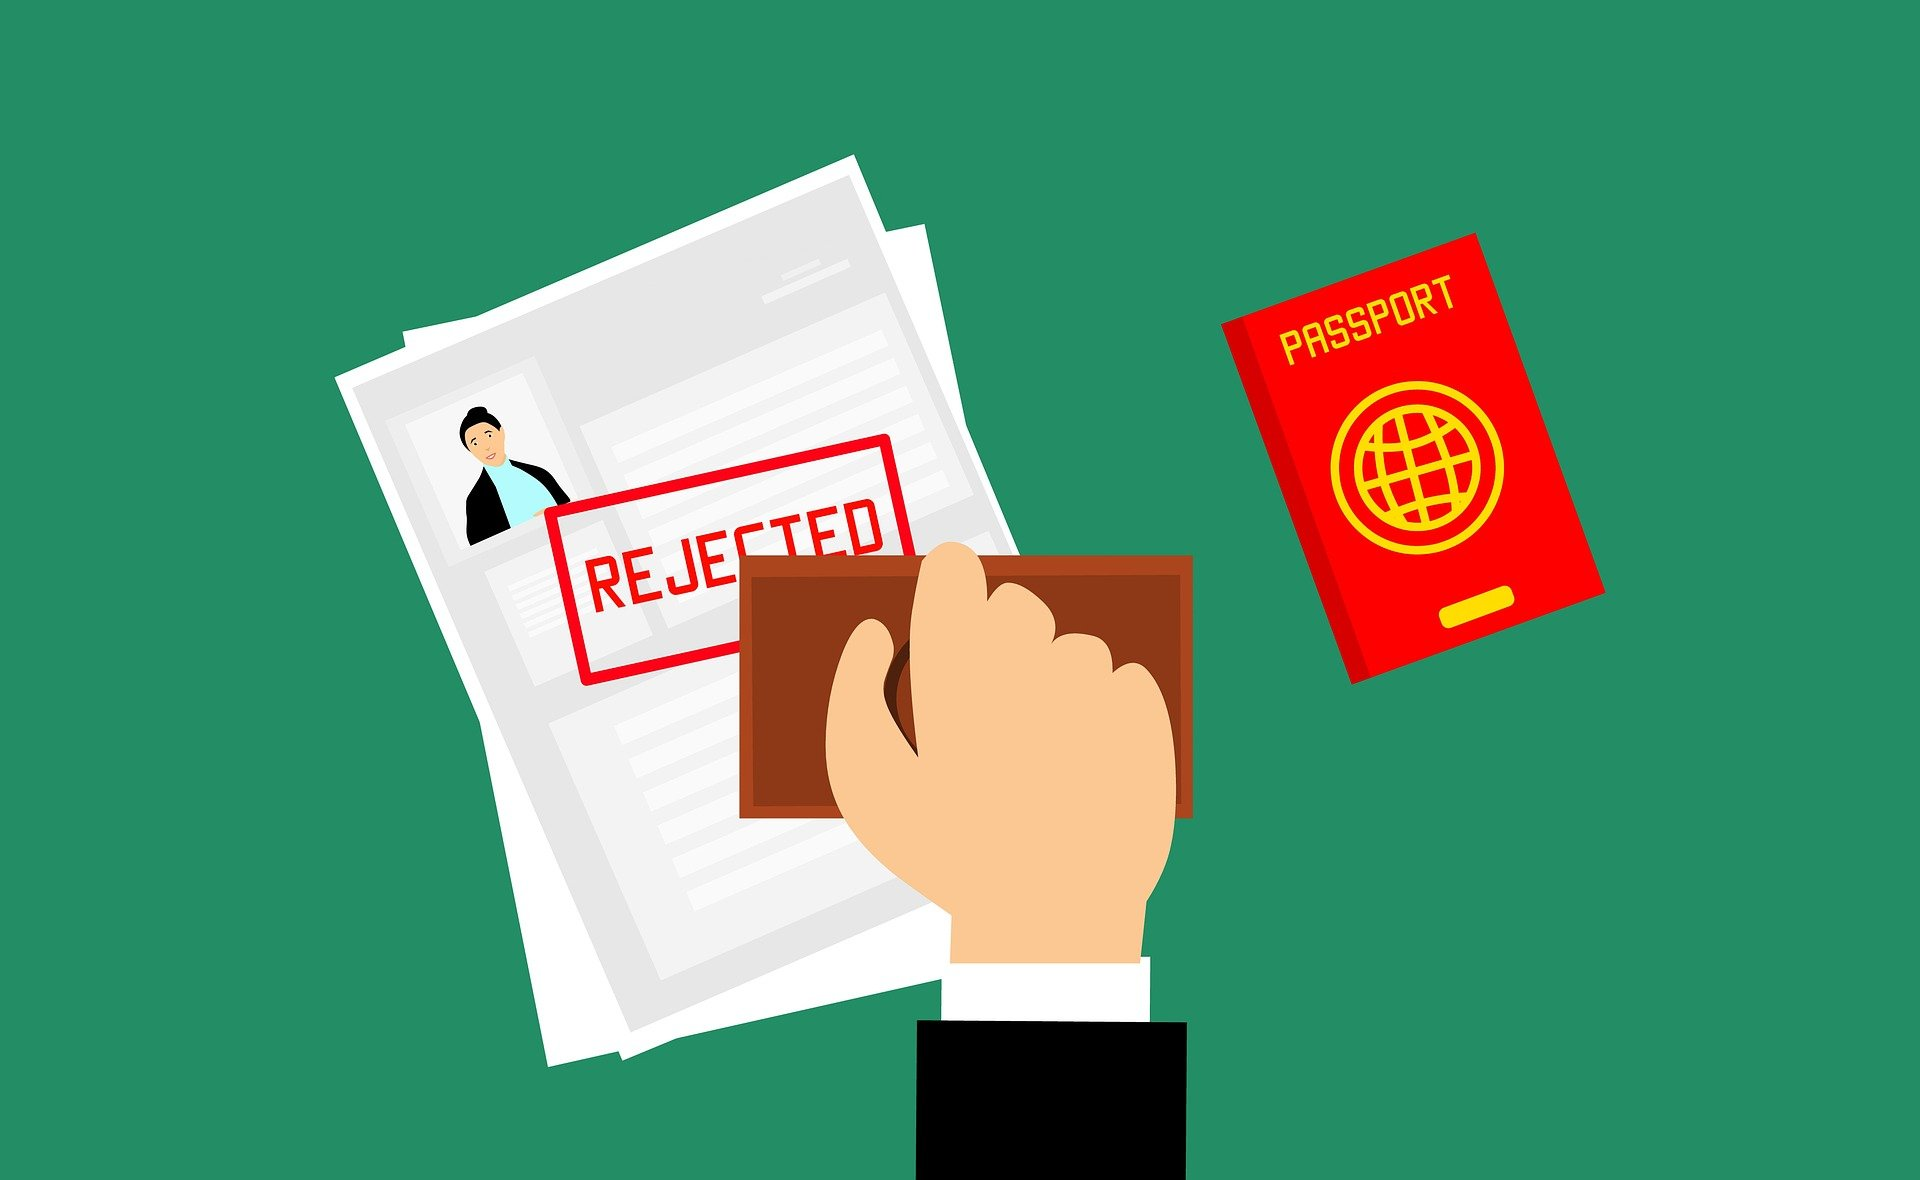 Rejected Singapore Employment Pass Application